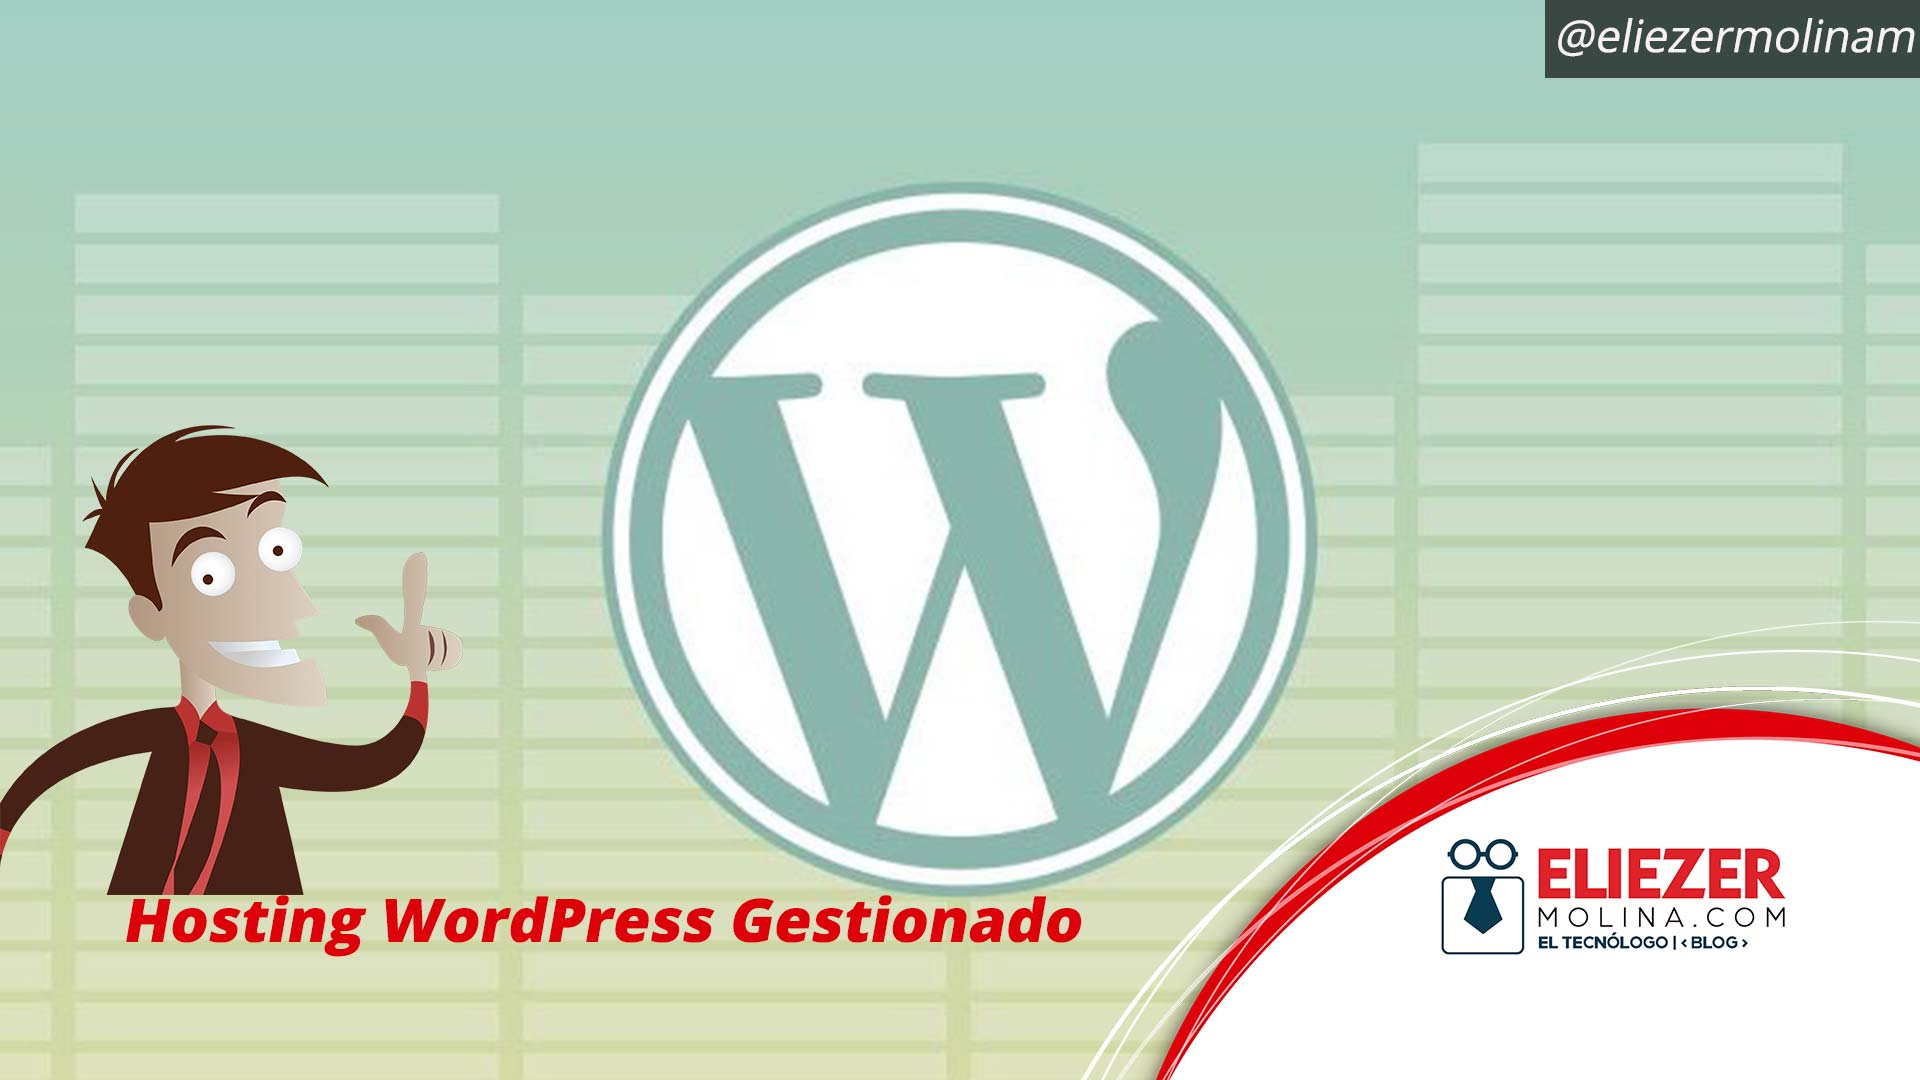 Hosting WordPress Gestionado